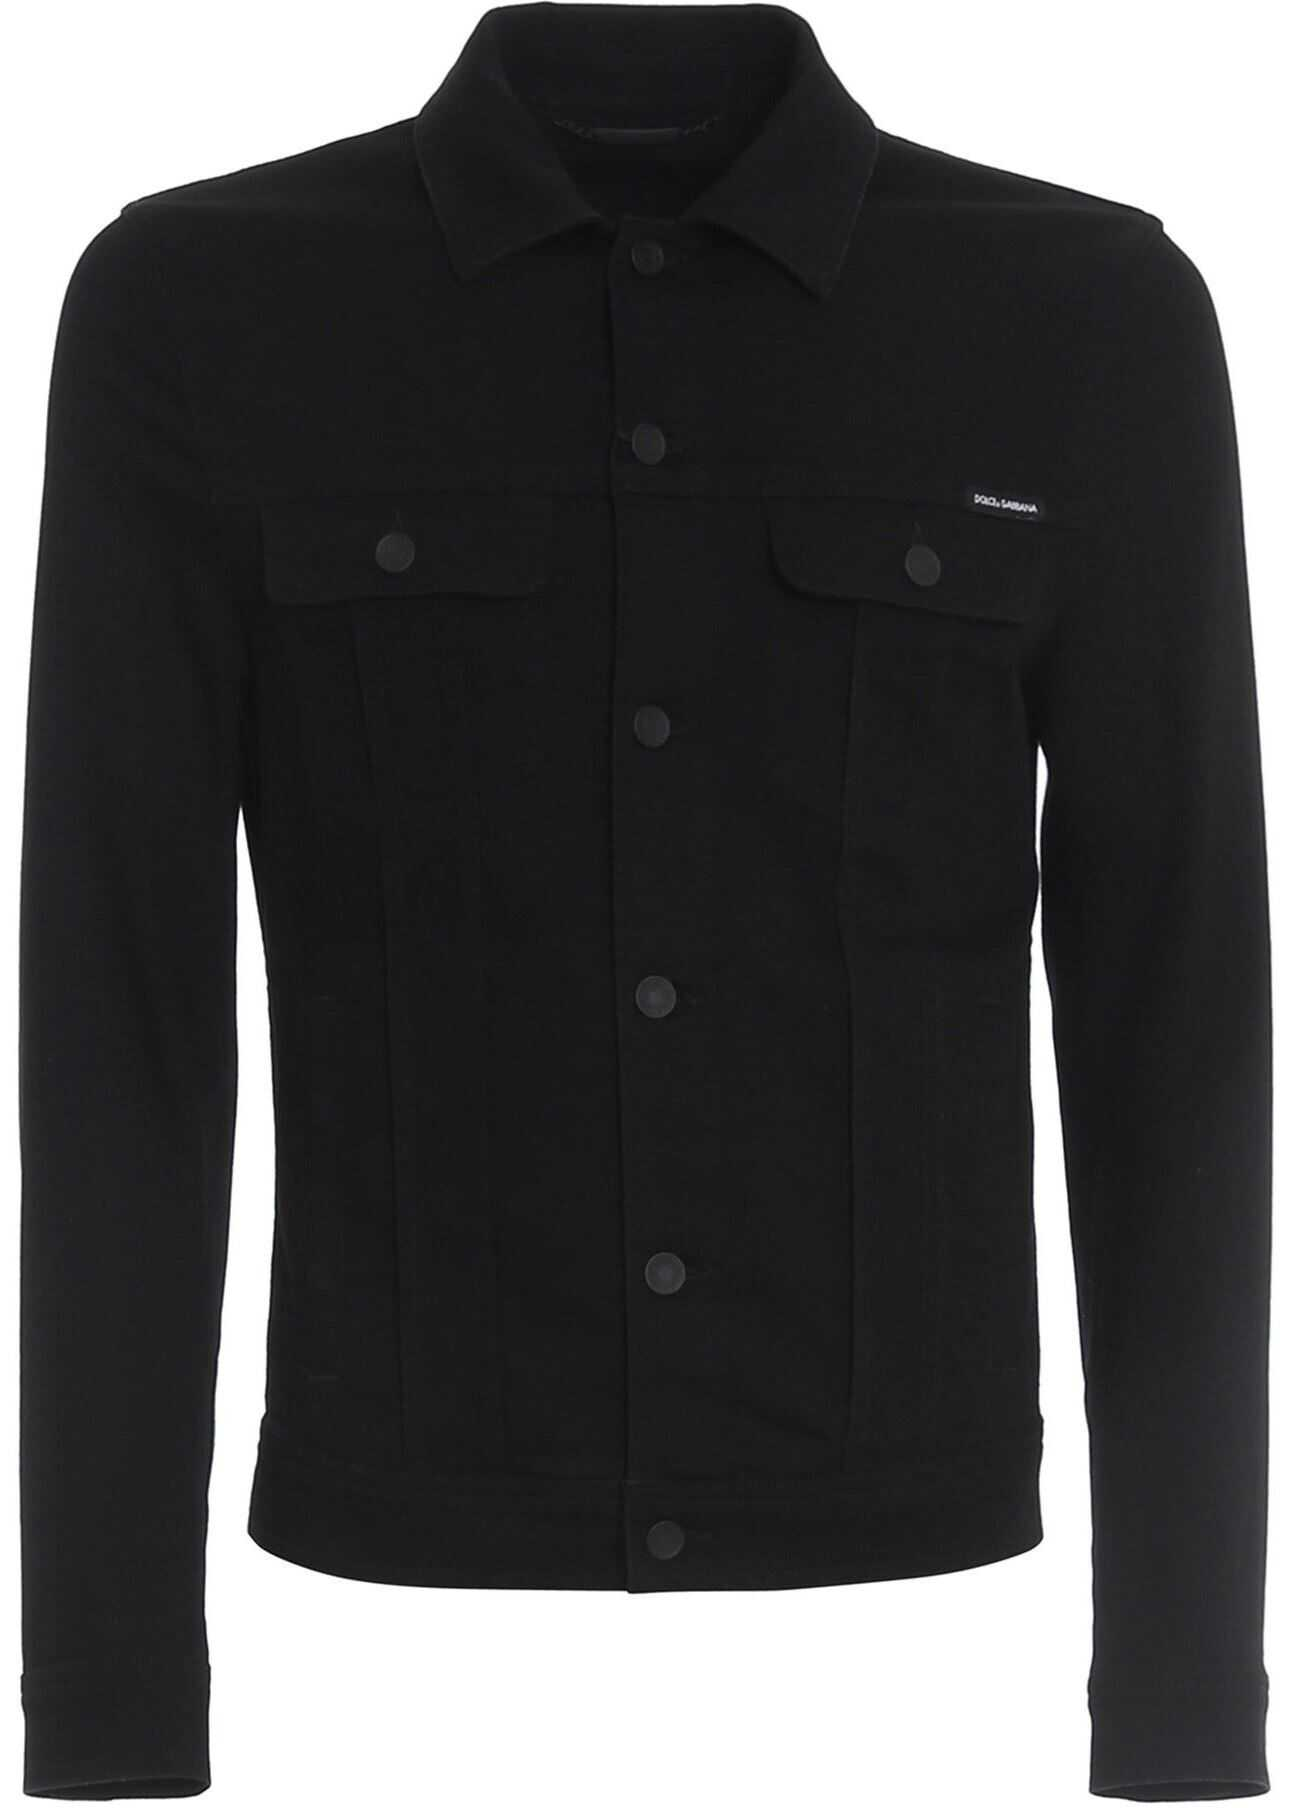 Dolce & Gabbana Black Stretch Denim Jacket Black imagine